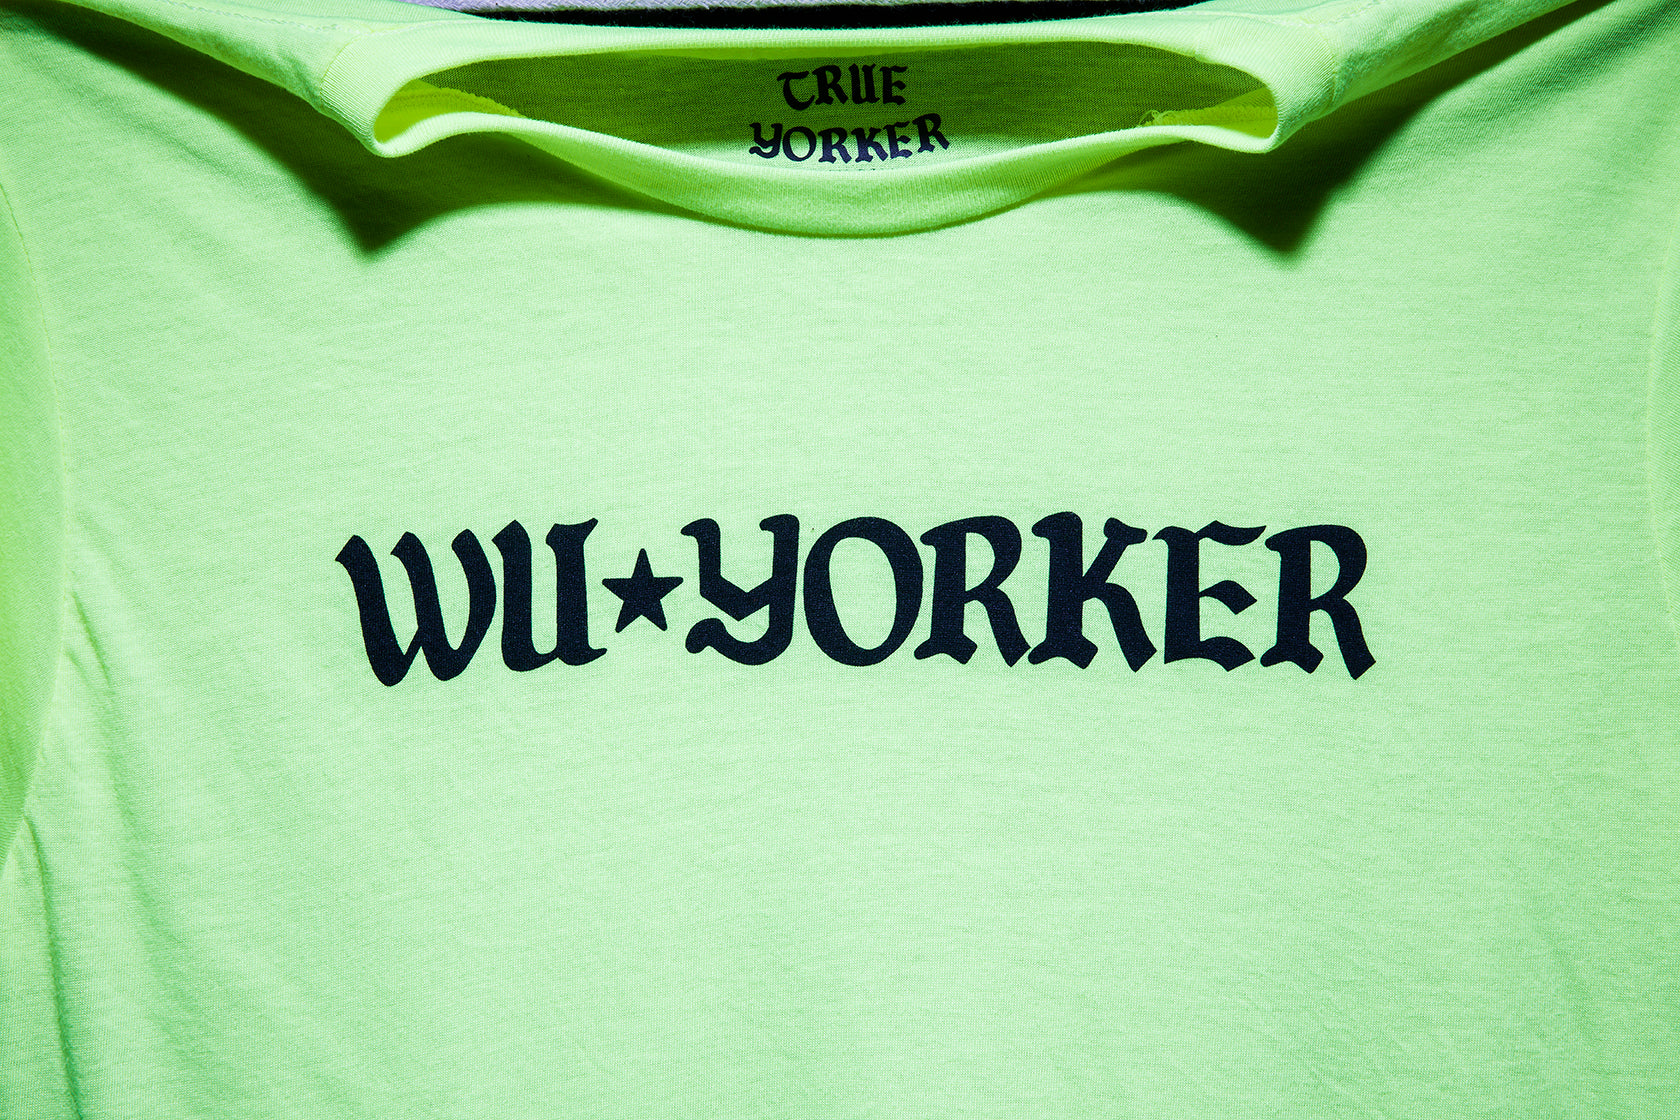 WU YORKER - PERFORMANCE T